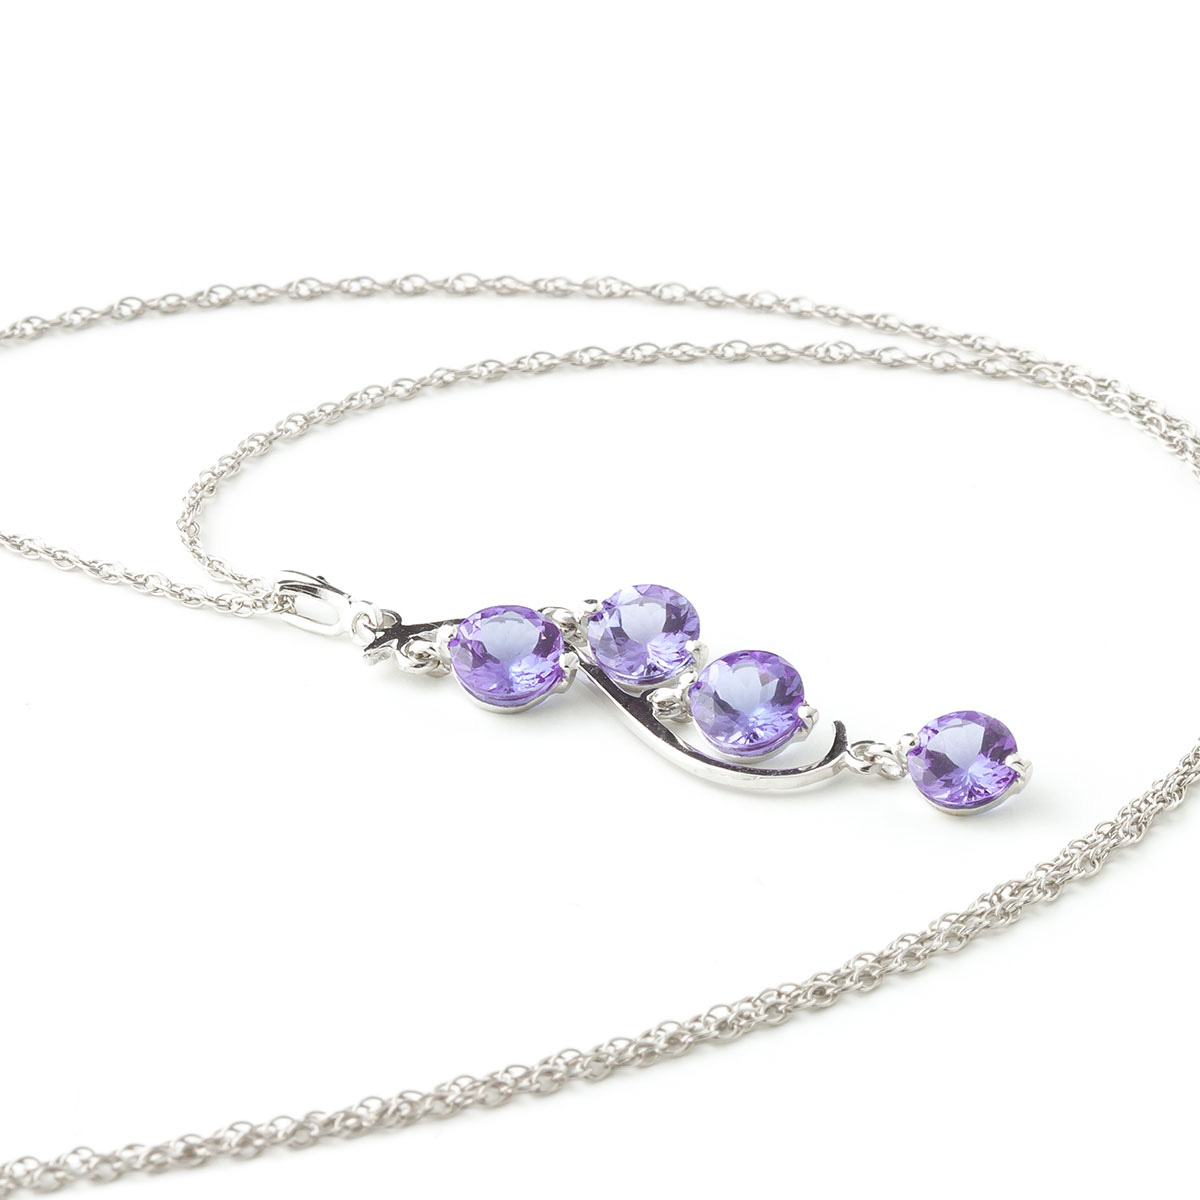 Sterling Round Peridot Pendant also White Gold Butterfly Necklace With 0 60ct Amethyst Pendant 1687w together with Z2Vtc3RvbmUtc2l6ZS1jaGFydA further 14k Yellow And White Gold 3 0ct Multi Gemstone Womens Bracelet 7 Length additionally Christmas 2017 Top 10 Best Jewelry Gifts For Girlfriend. on 11 carat blue topaz